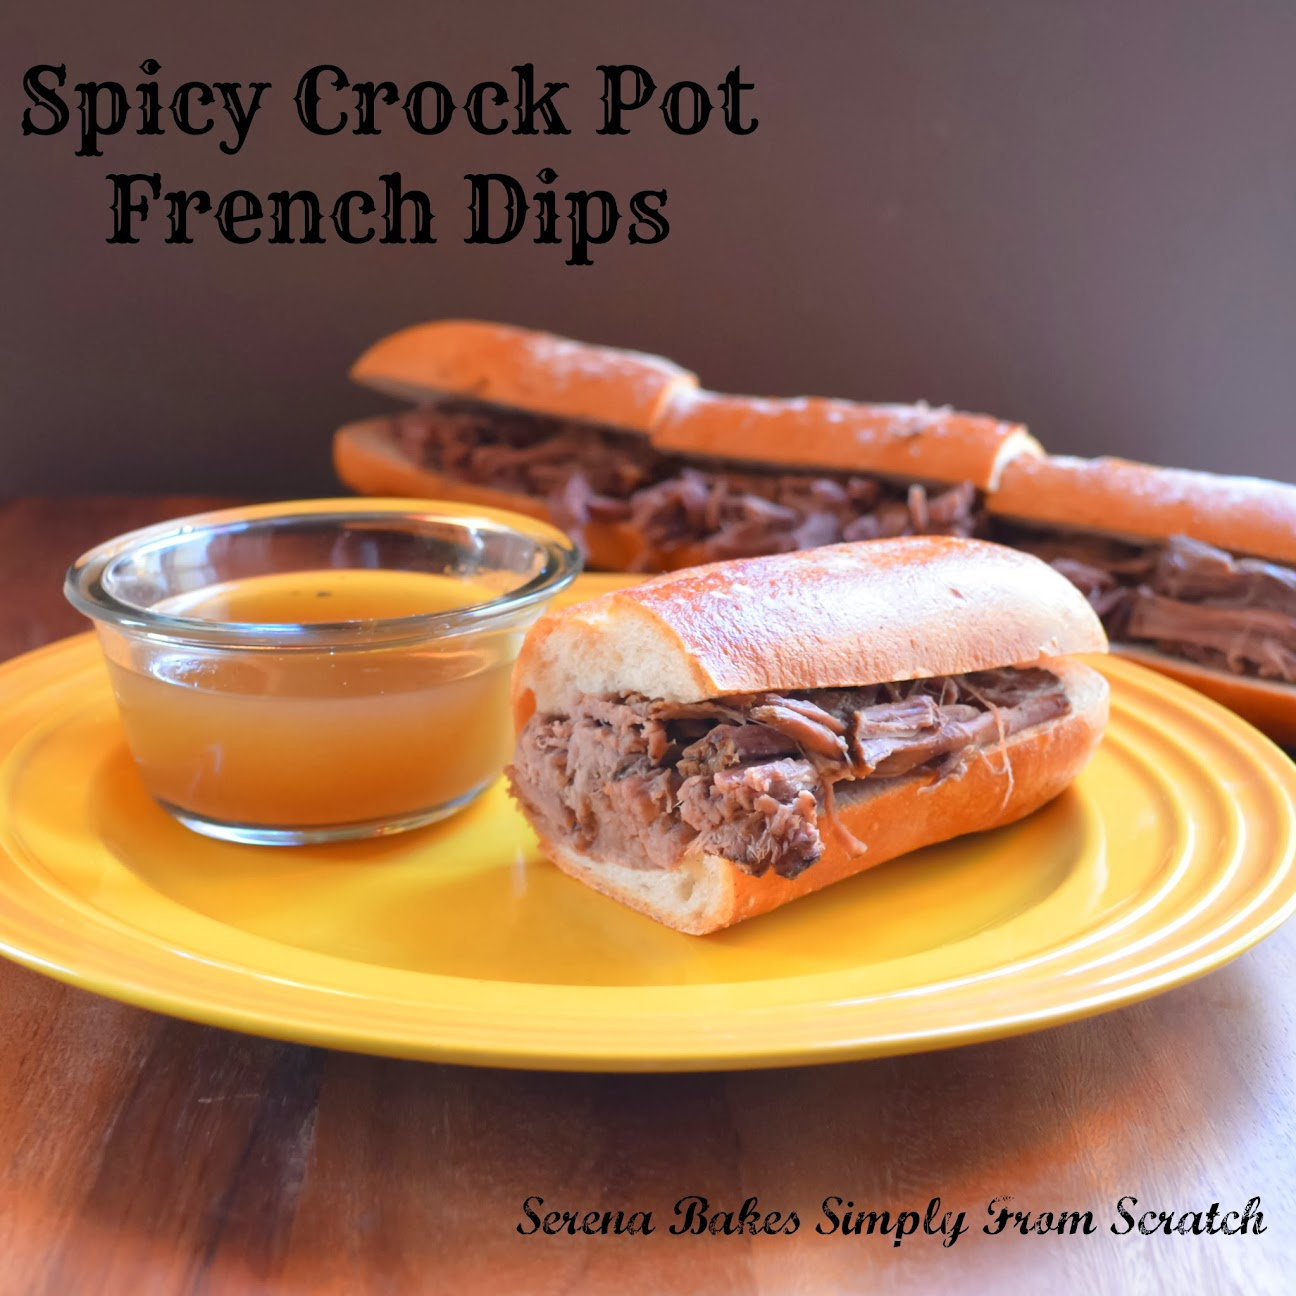 Spicy-Crock-Pot-French-Dips.jpg